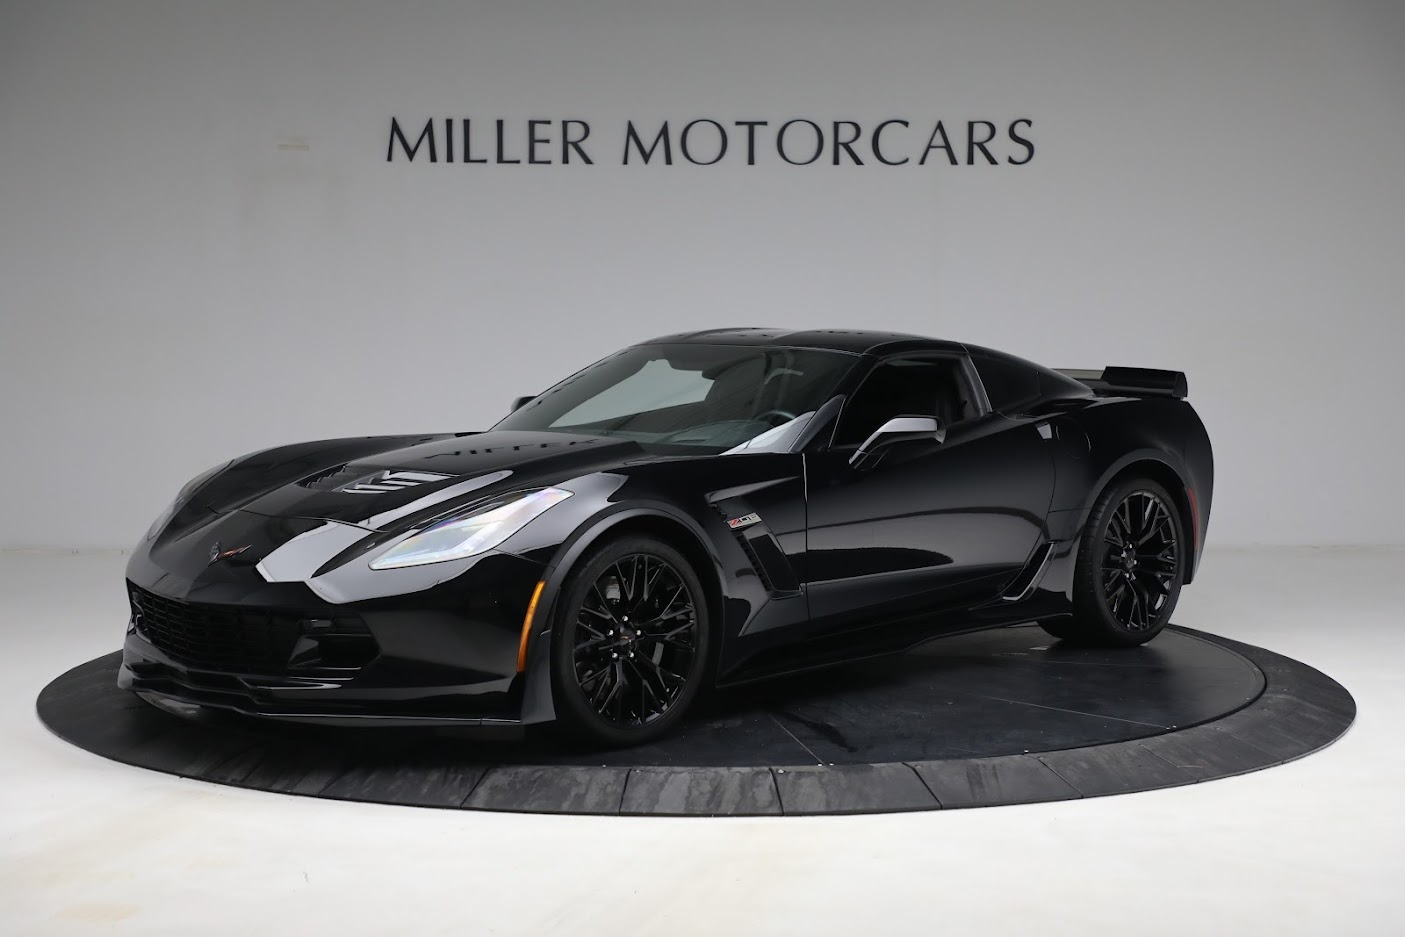 Used 2016 Chevrolet Corvette Z06 for sale $85,900 at Pagani of Greenwich in Greenwich CT 06830 1